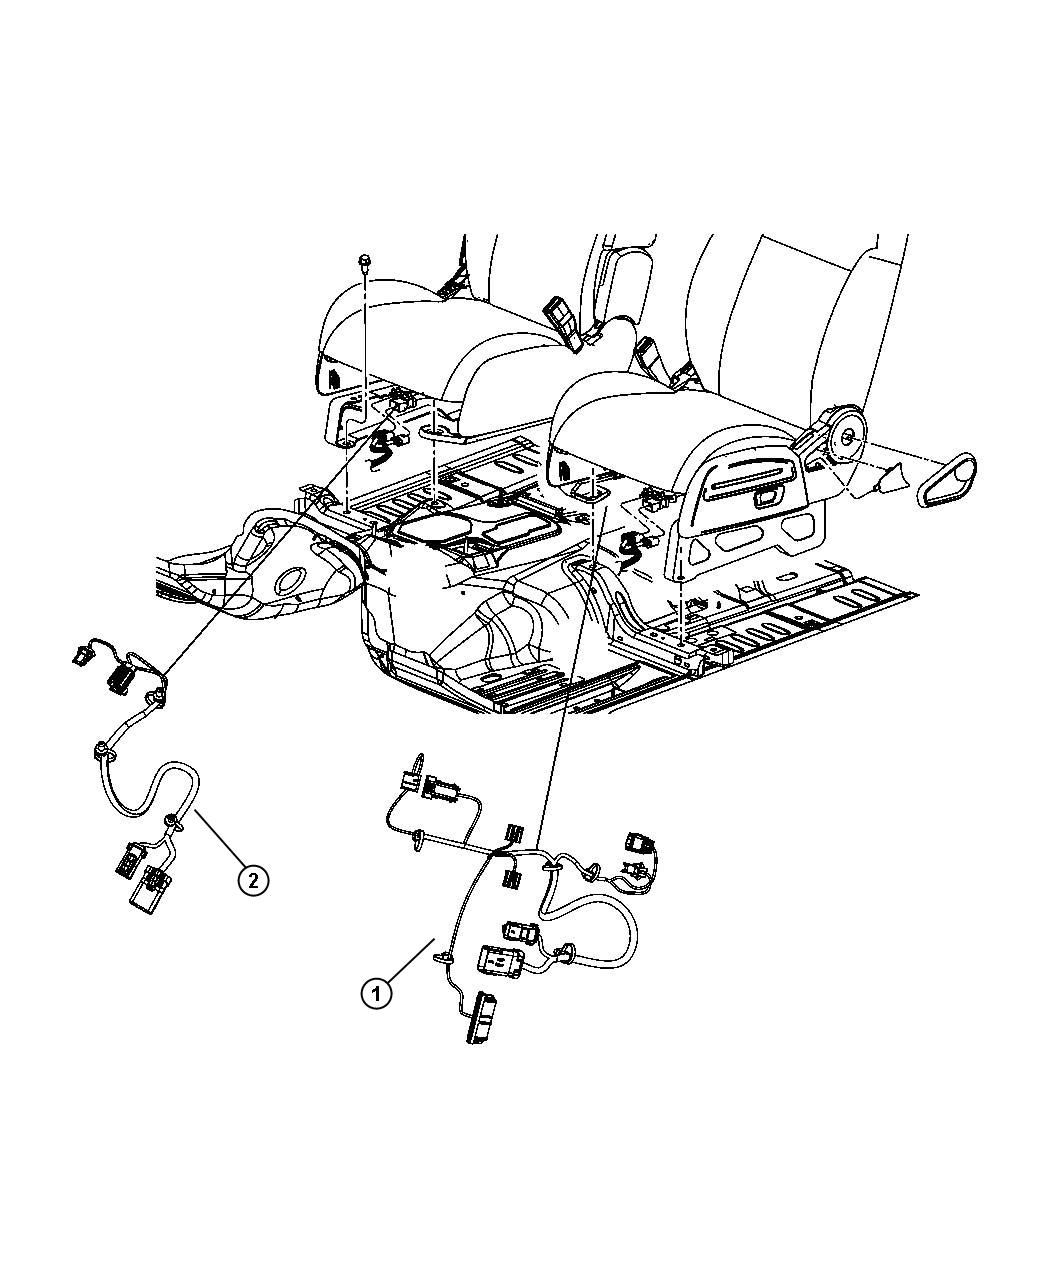 Jeep Liberty Wiring Power Seat Seat Driver 6 Way